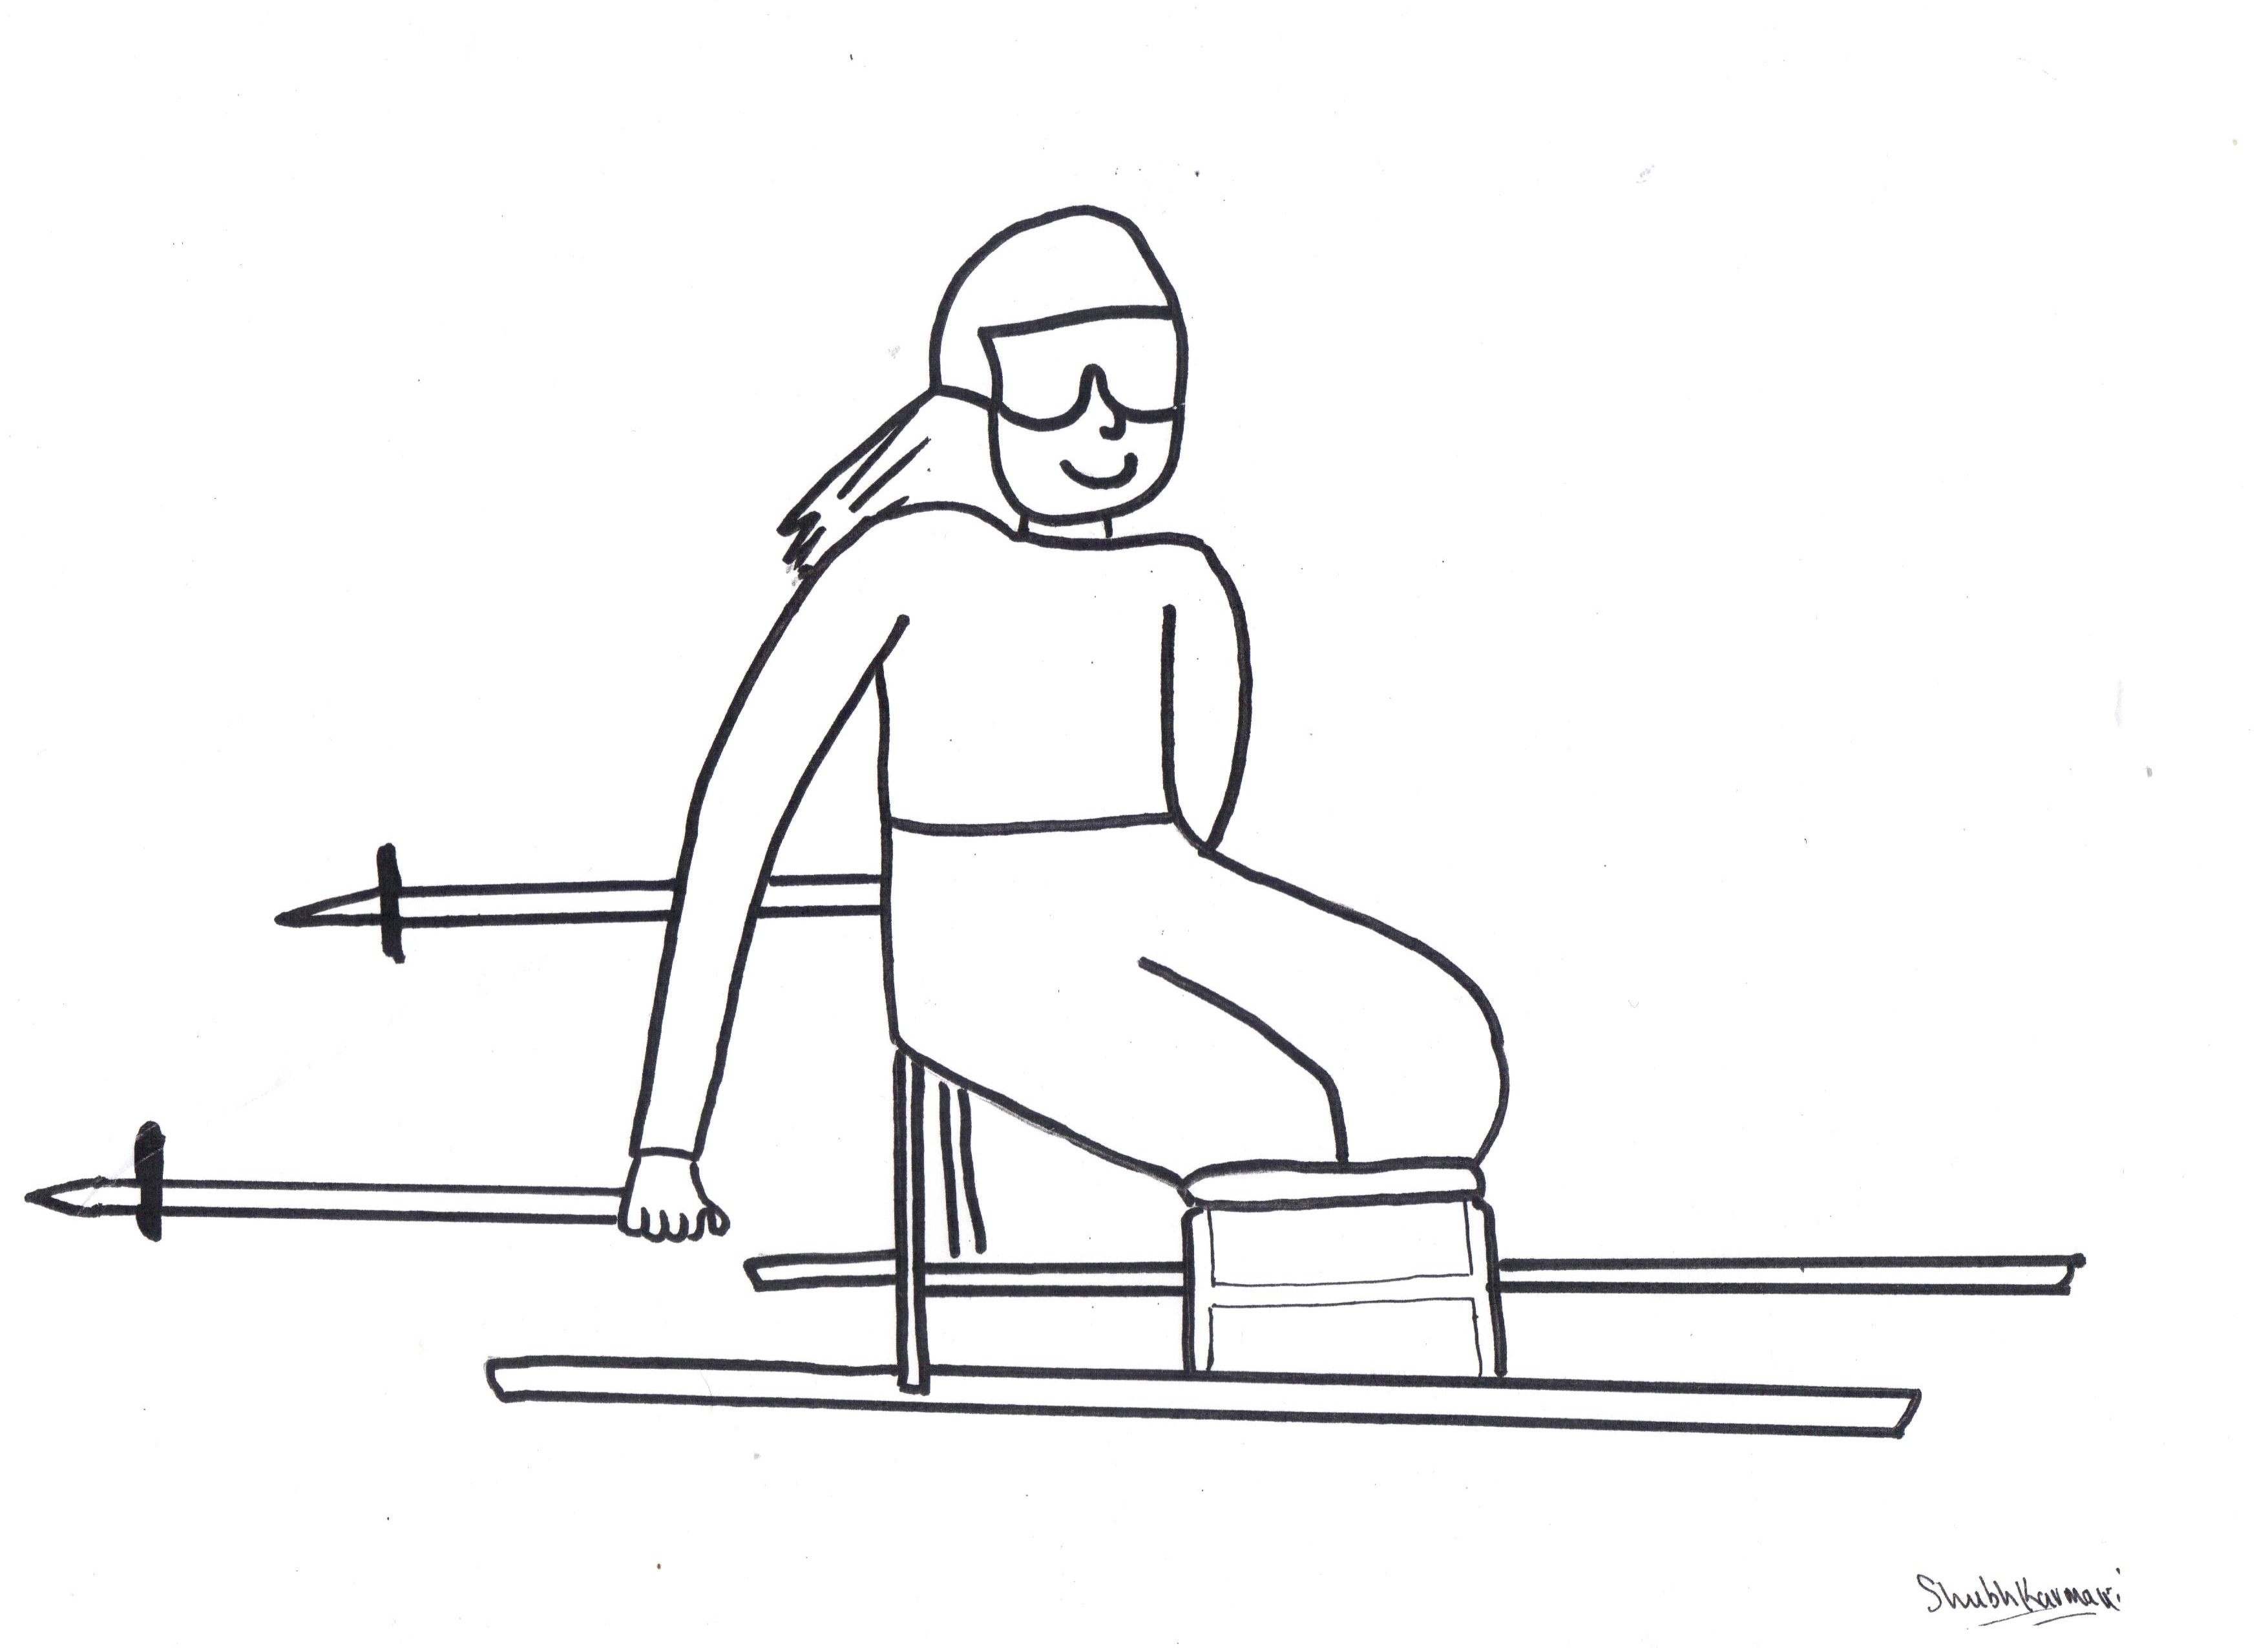 Coloring pages quebec - This Is Where I Found My Olympics Coloring Pages